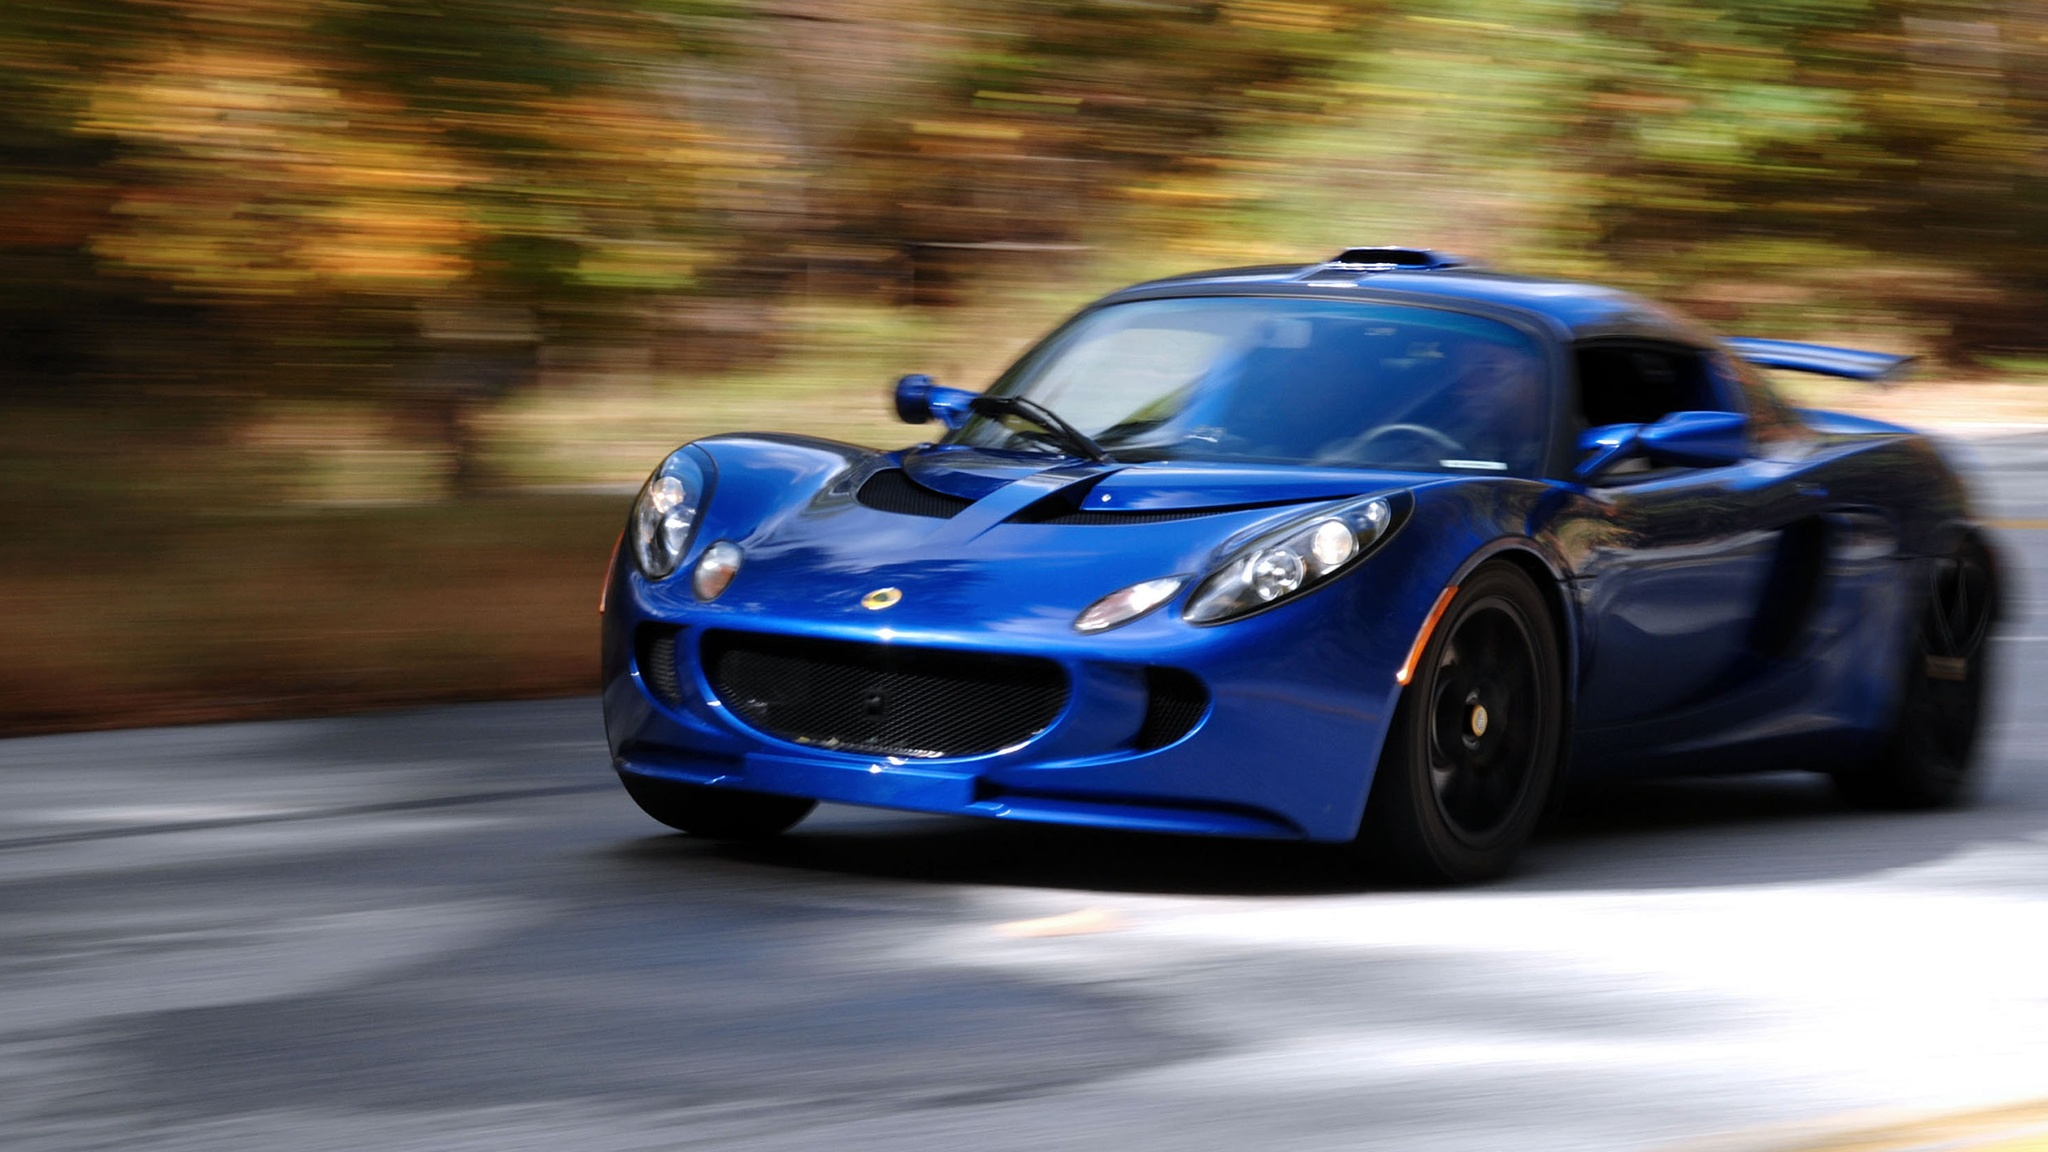 Lotus to start production in China under new owner Geely | Financial Times